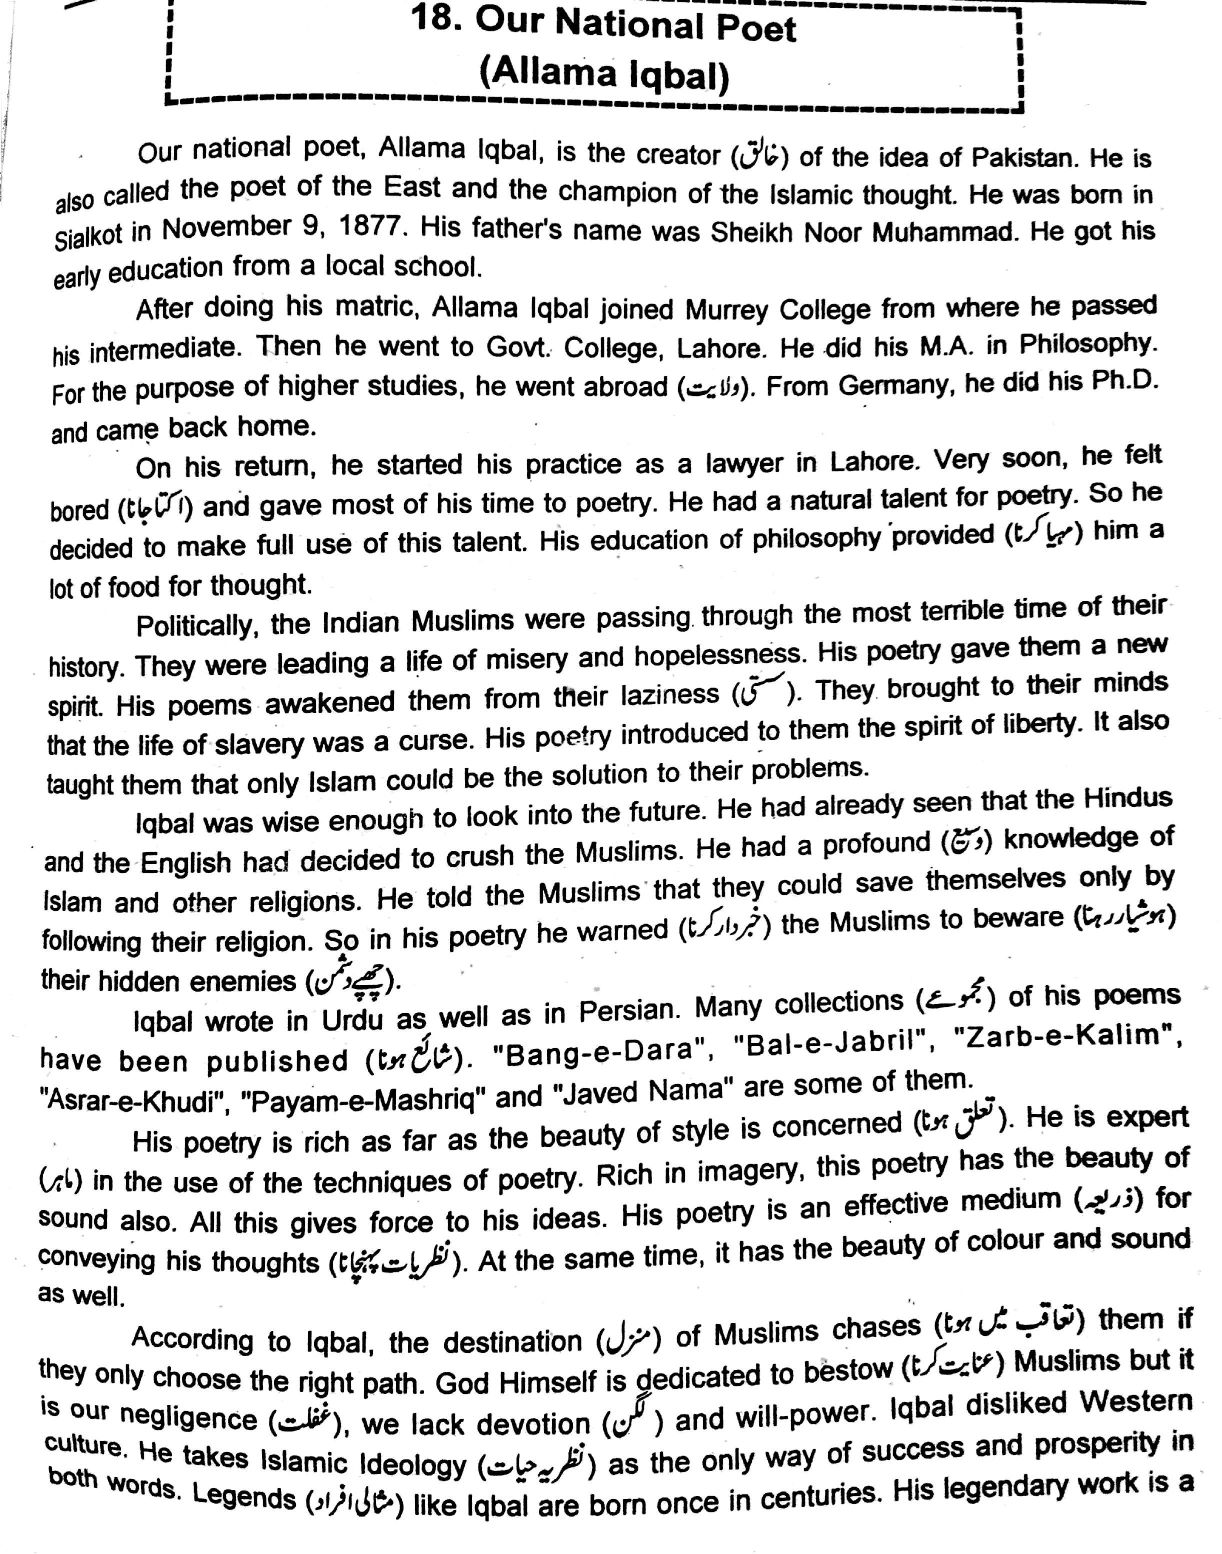 essay on class a road accident essay english quotation for fsc b  allama iqbal essay in urdu for class allama iqbal essay in urdu for class 8